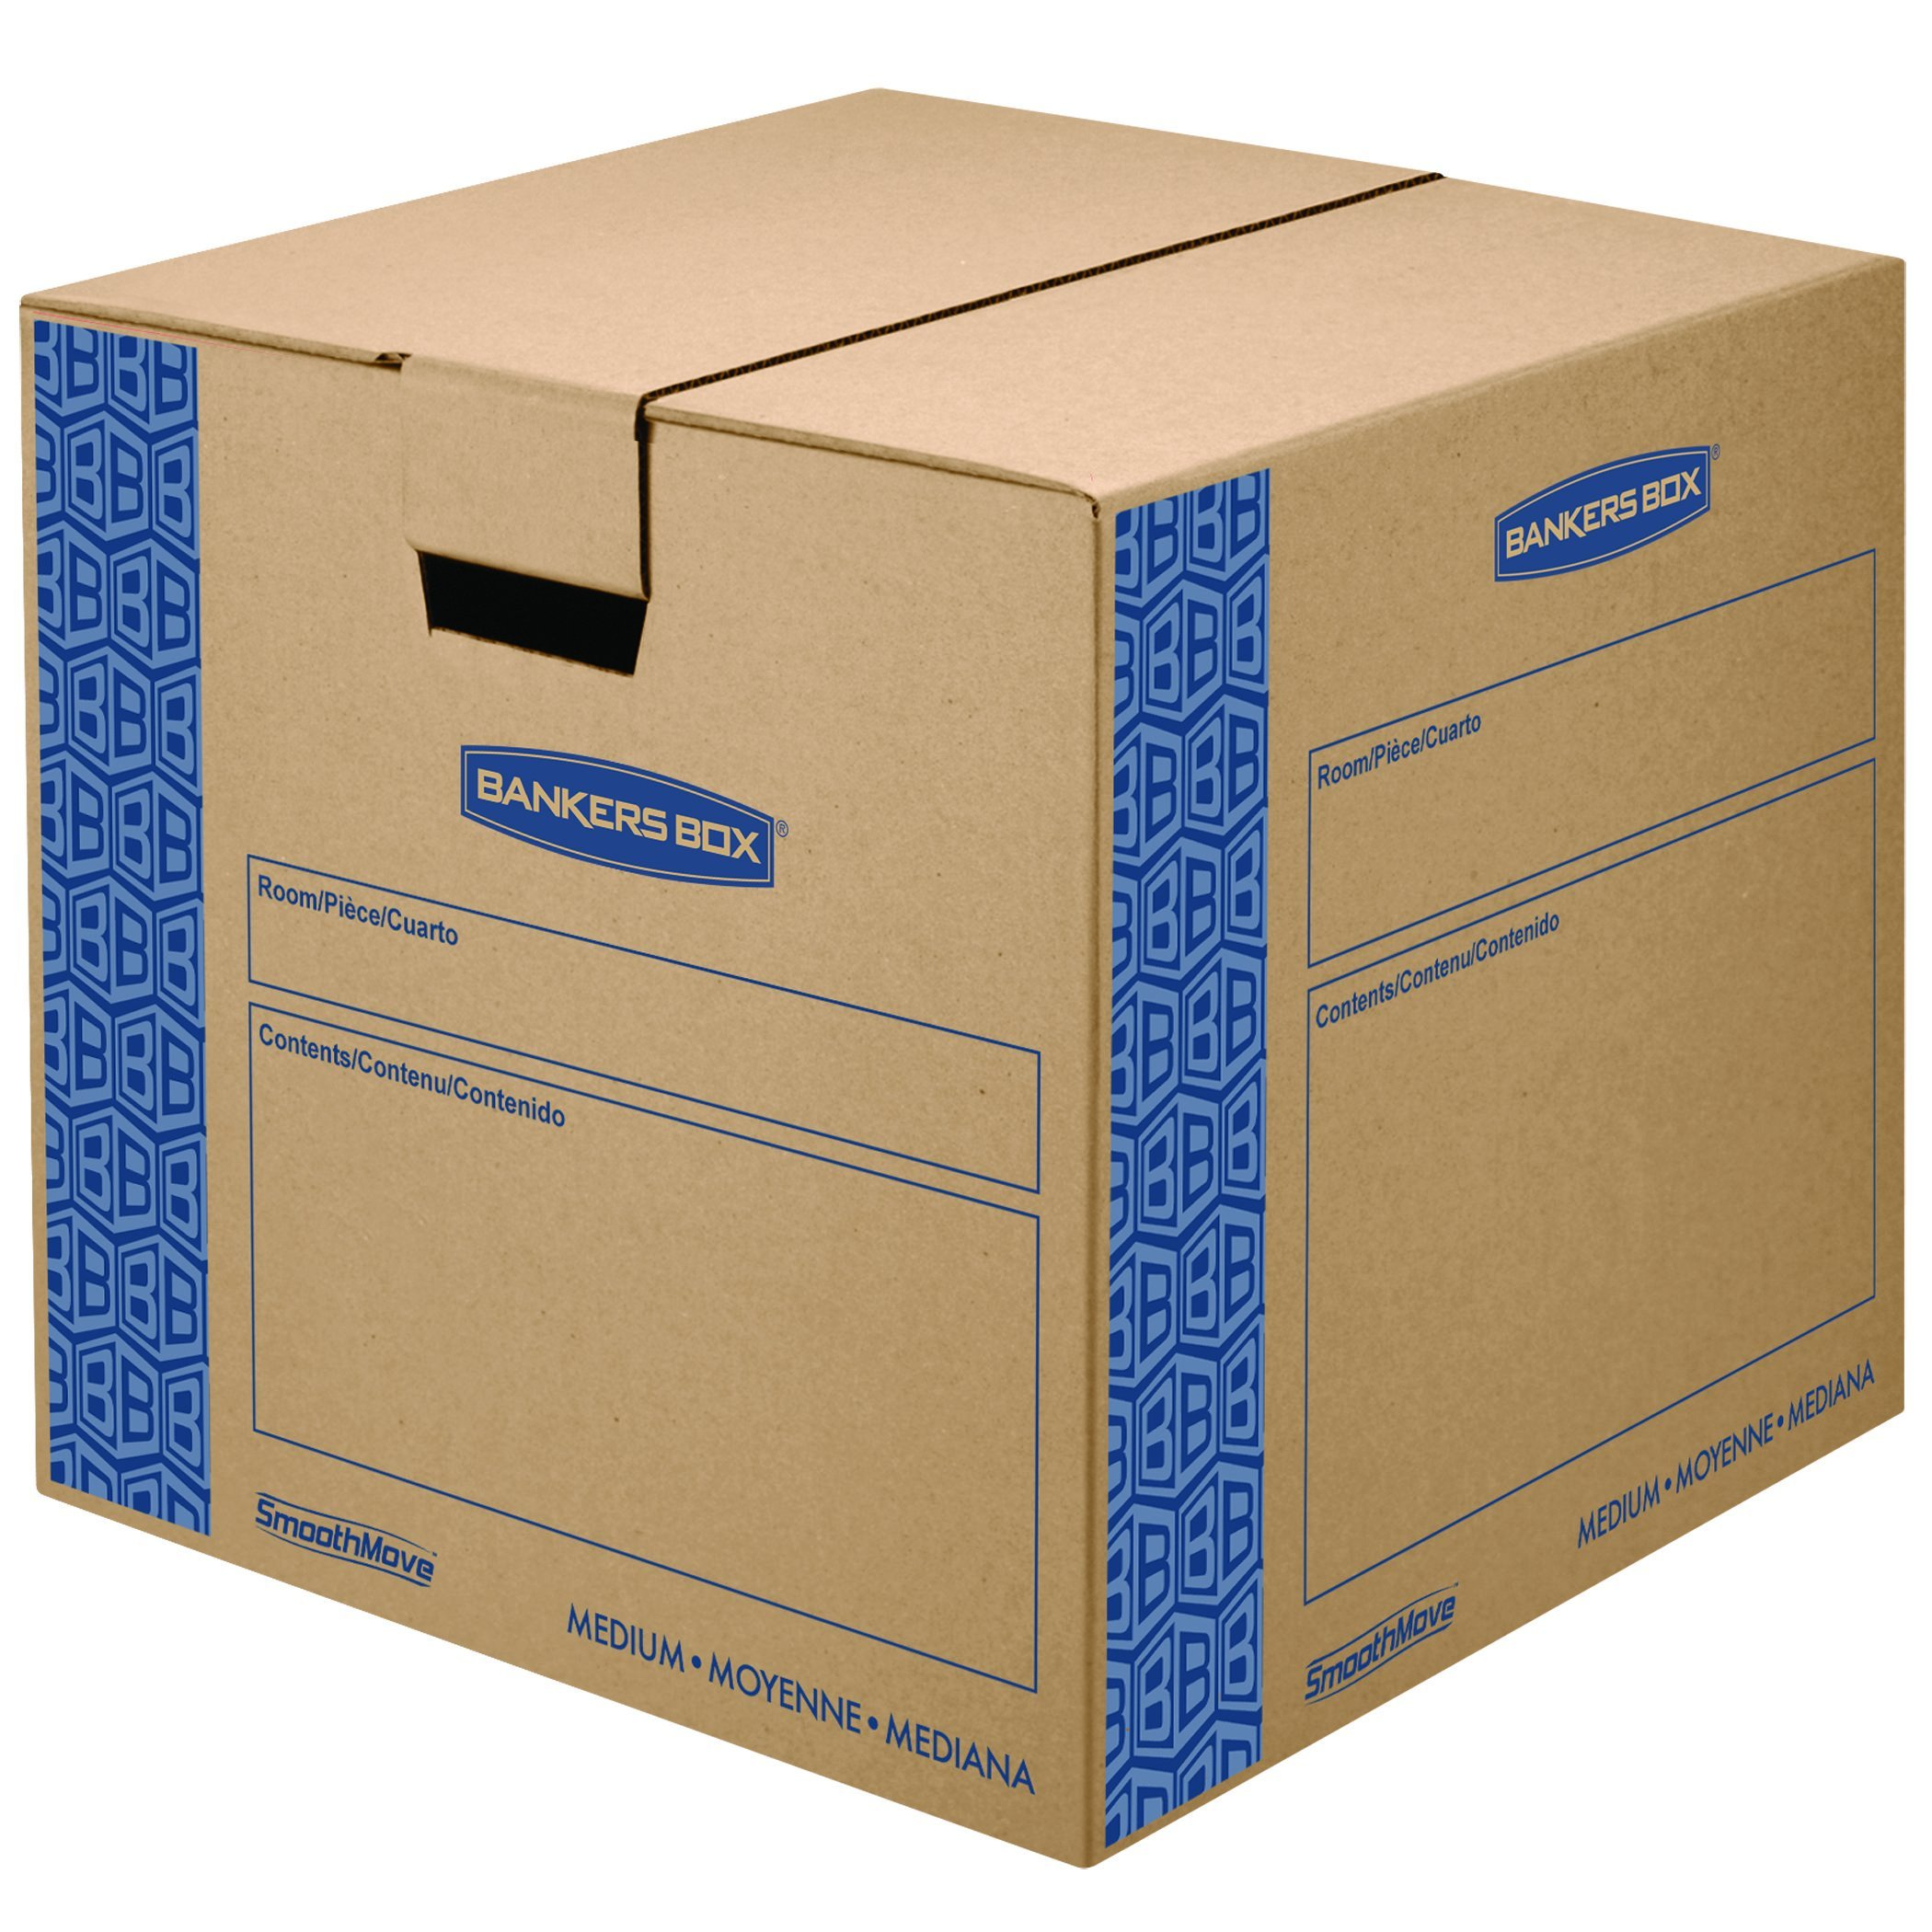 Bankers Box SmoothMove Prime Moving Boxes, Tape-Free, FastFold Easy Assembly, Handles, Reusable, Medium, 18 x 18 x 16 Inches, 8 Pack (0062801) by Bankers Box